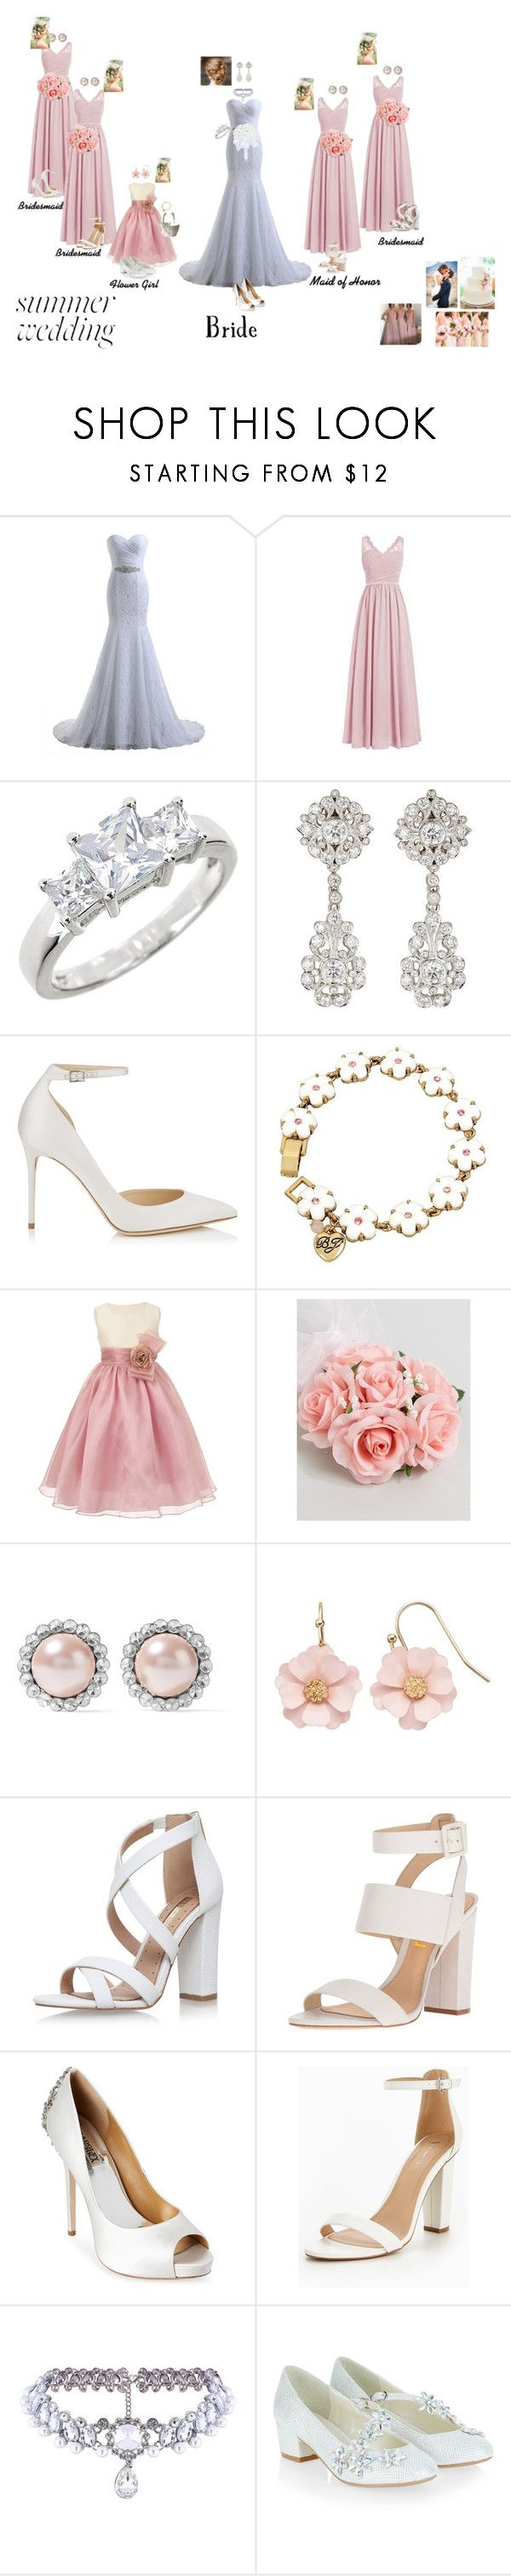 """Summer Wedding"" by candykiller1999 ❤ liked on Polyvore featuring Sterling Forever, McTeigue & McClelland, Jimmy Choo, Betsey Johnson, ASOS, Miu Miu, LC Lauren Conrad, Miss KG, Badgley Mischka and WithChic"